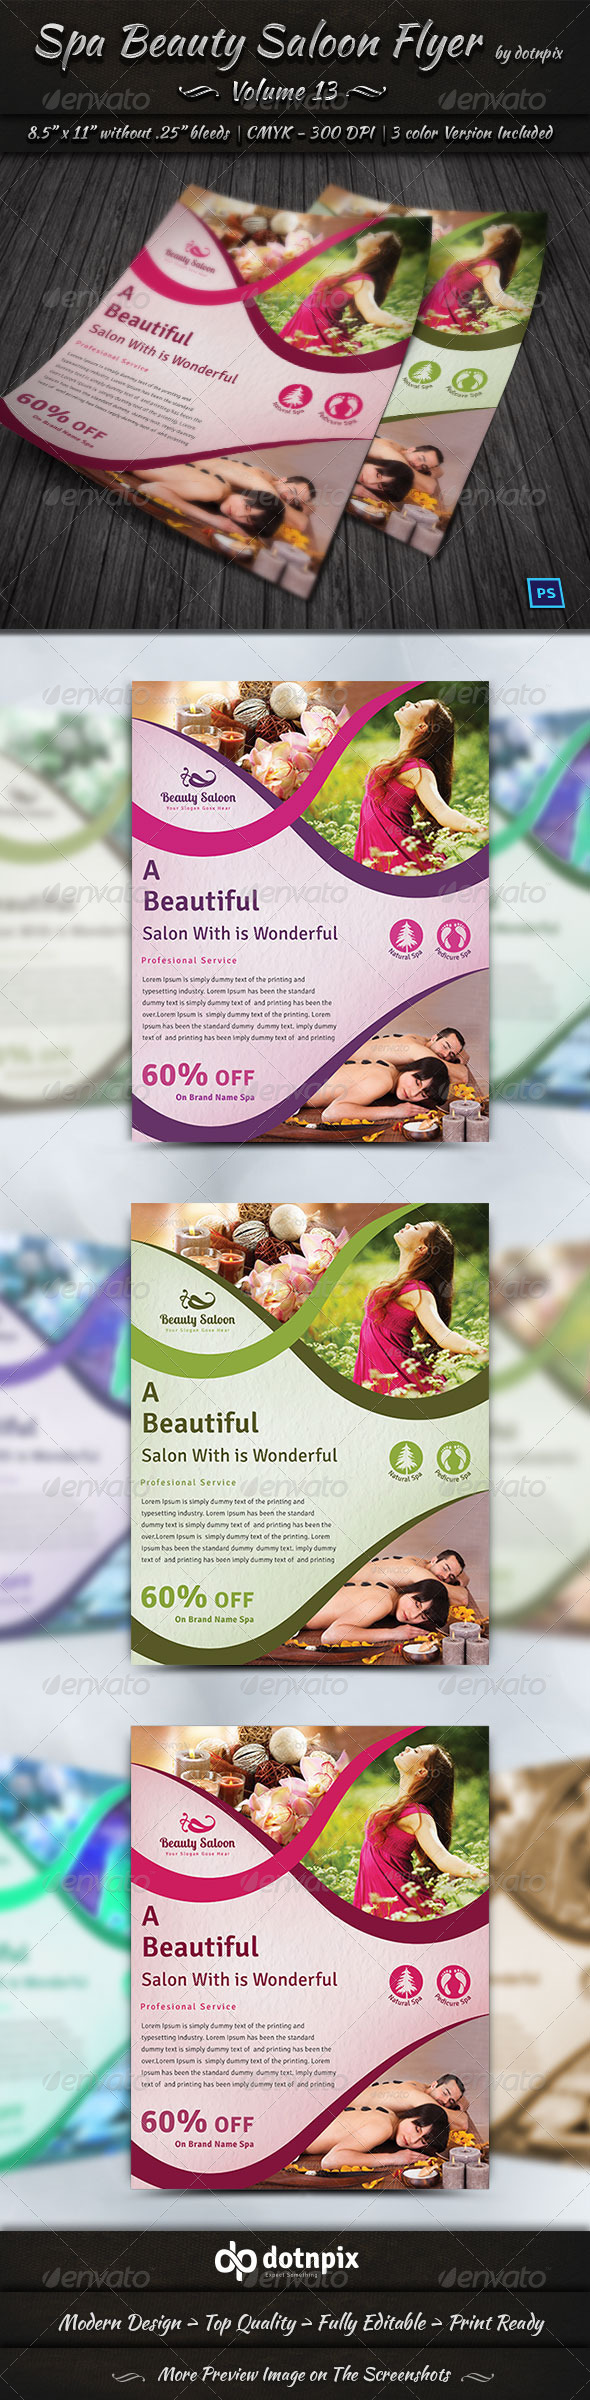 GraphicRiver Spa Beauty Saloon Flyer Volume 13 7969950